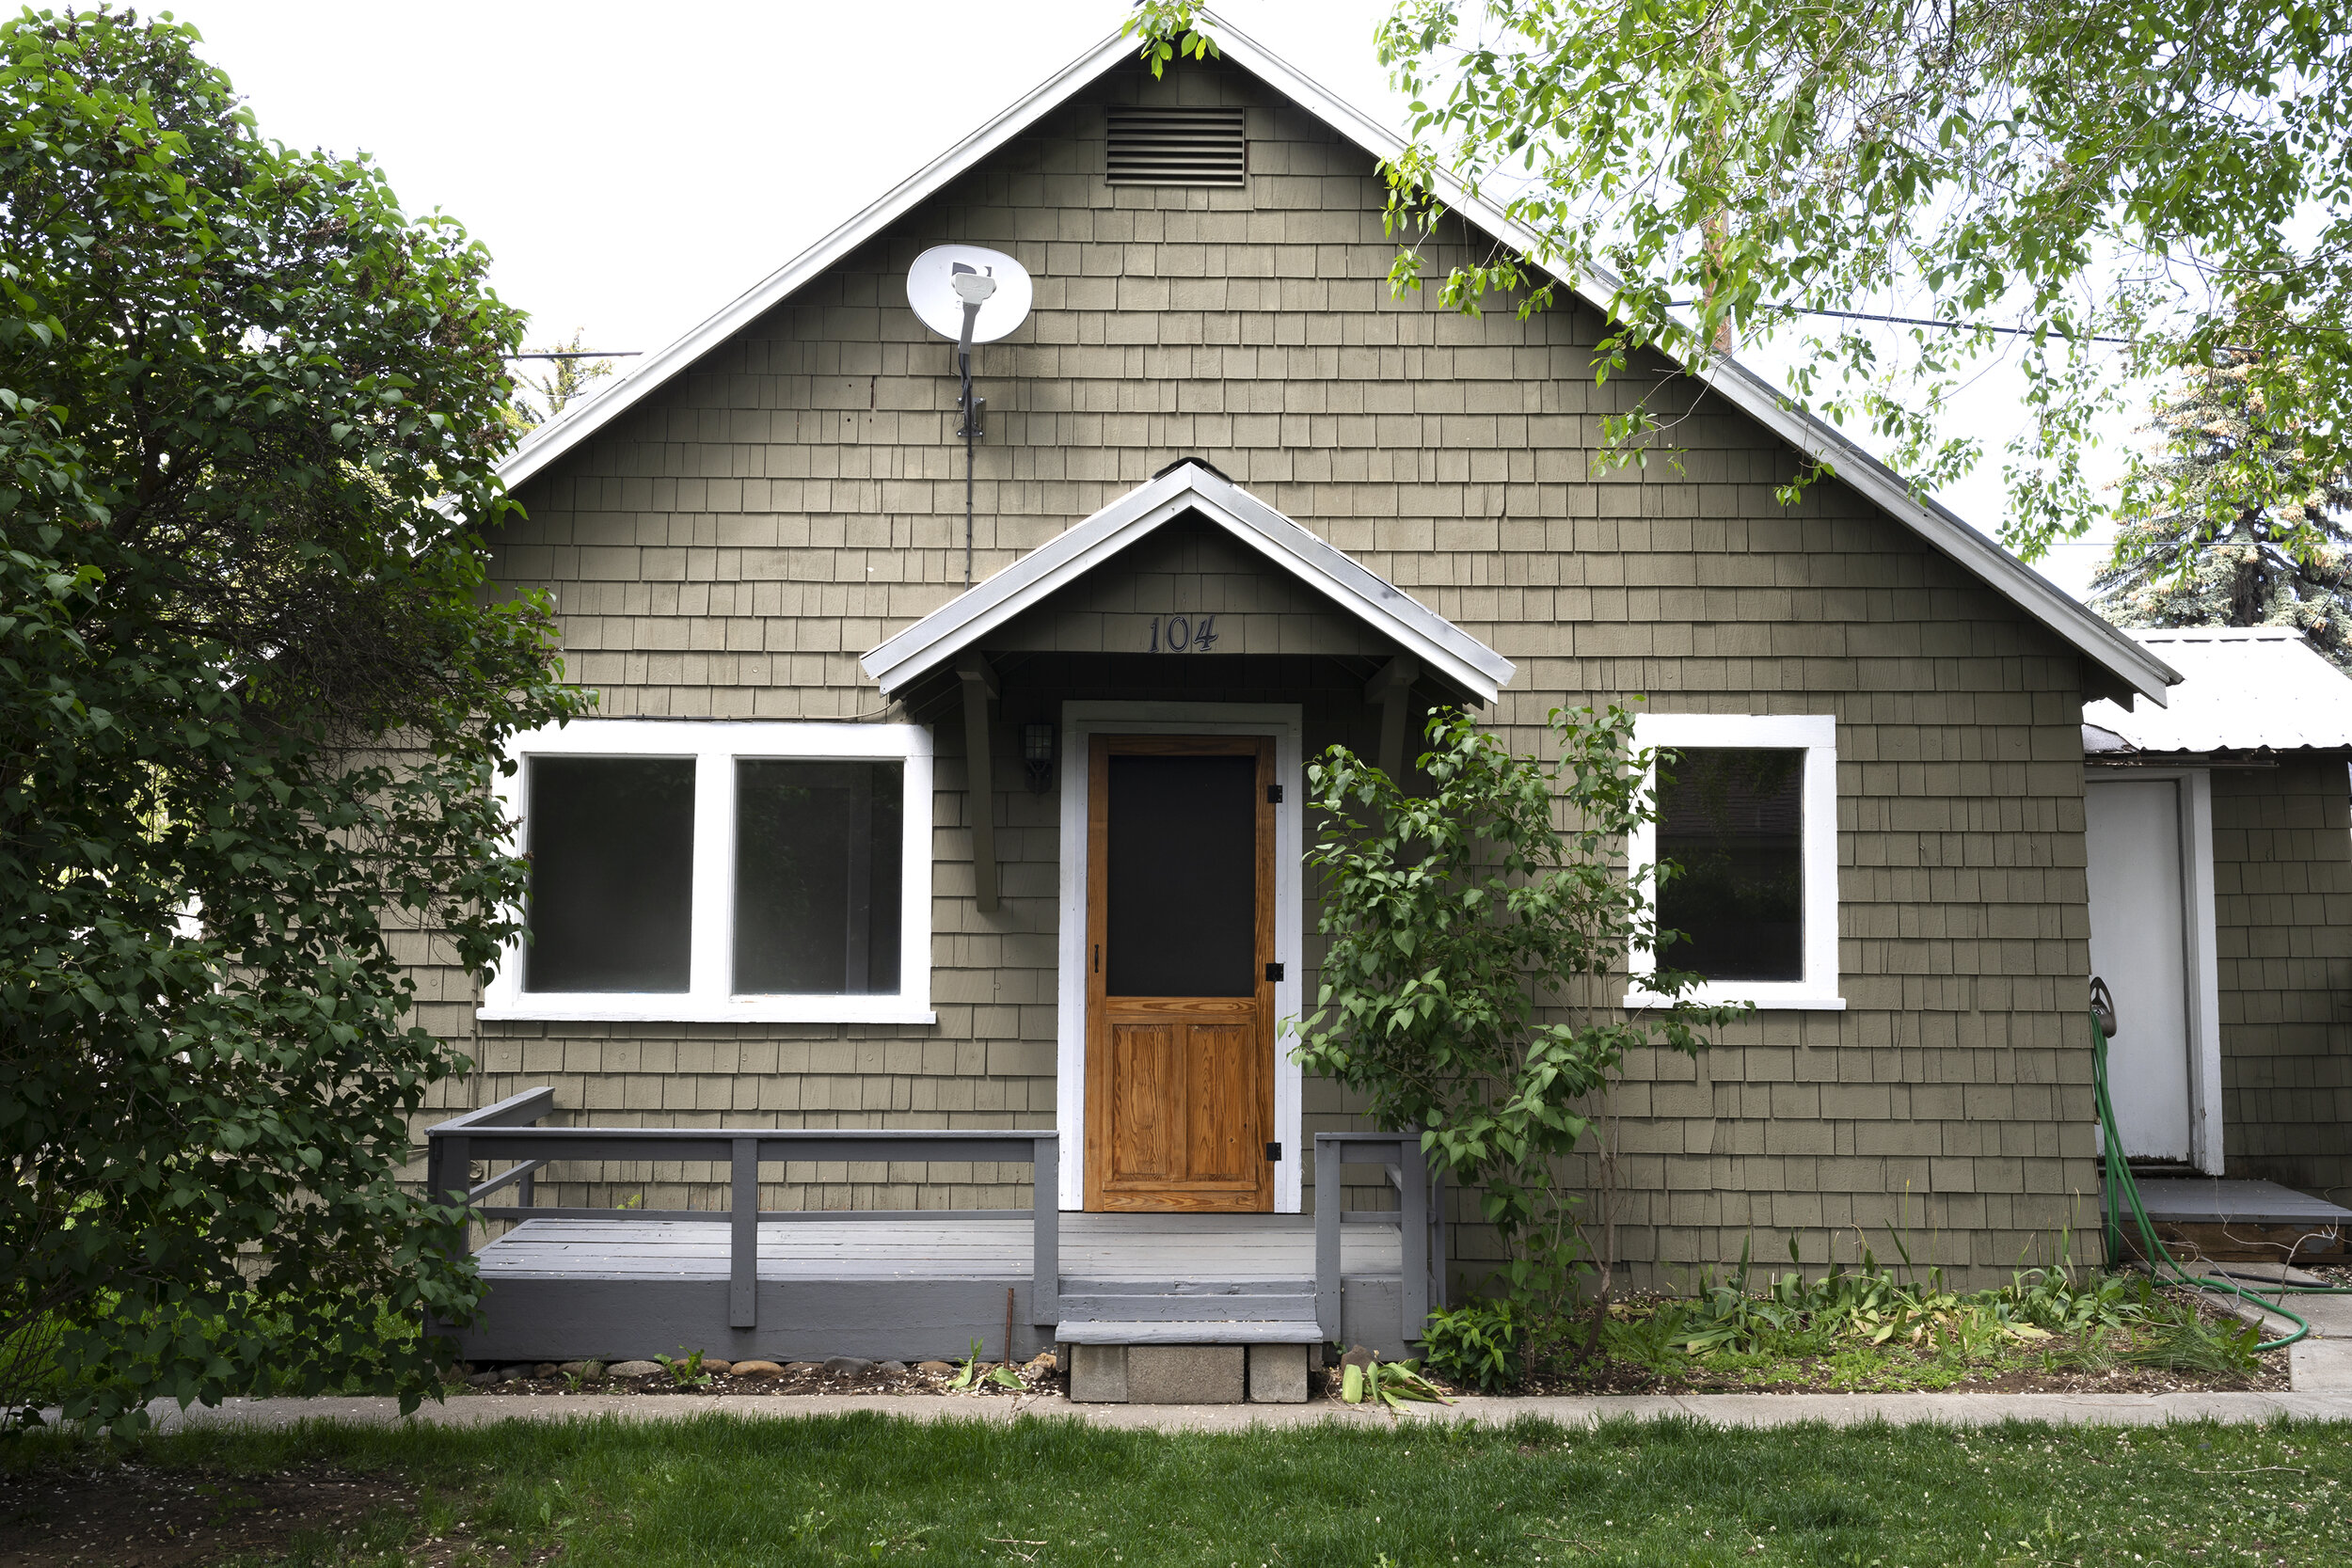 construction update at the Poplar Cottage | the grit and polish